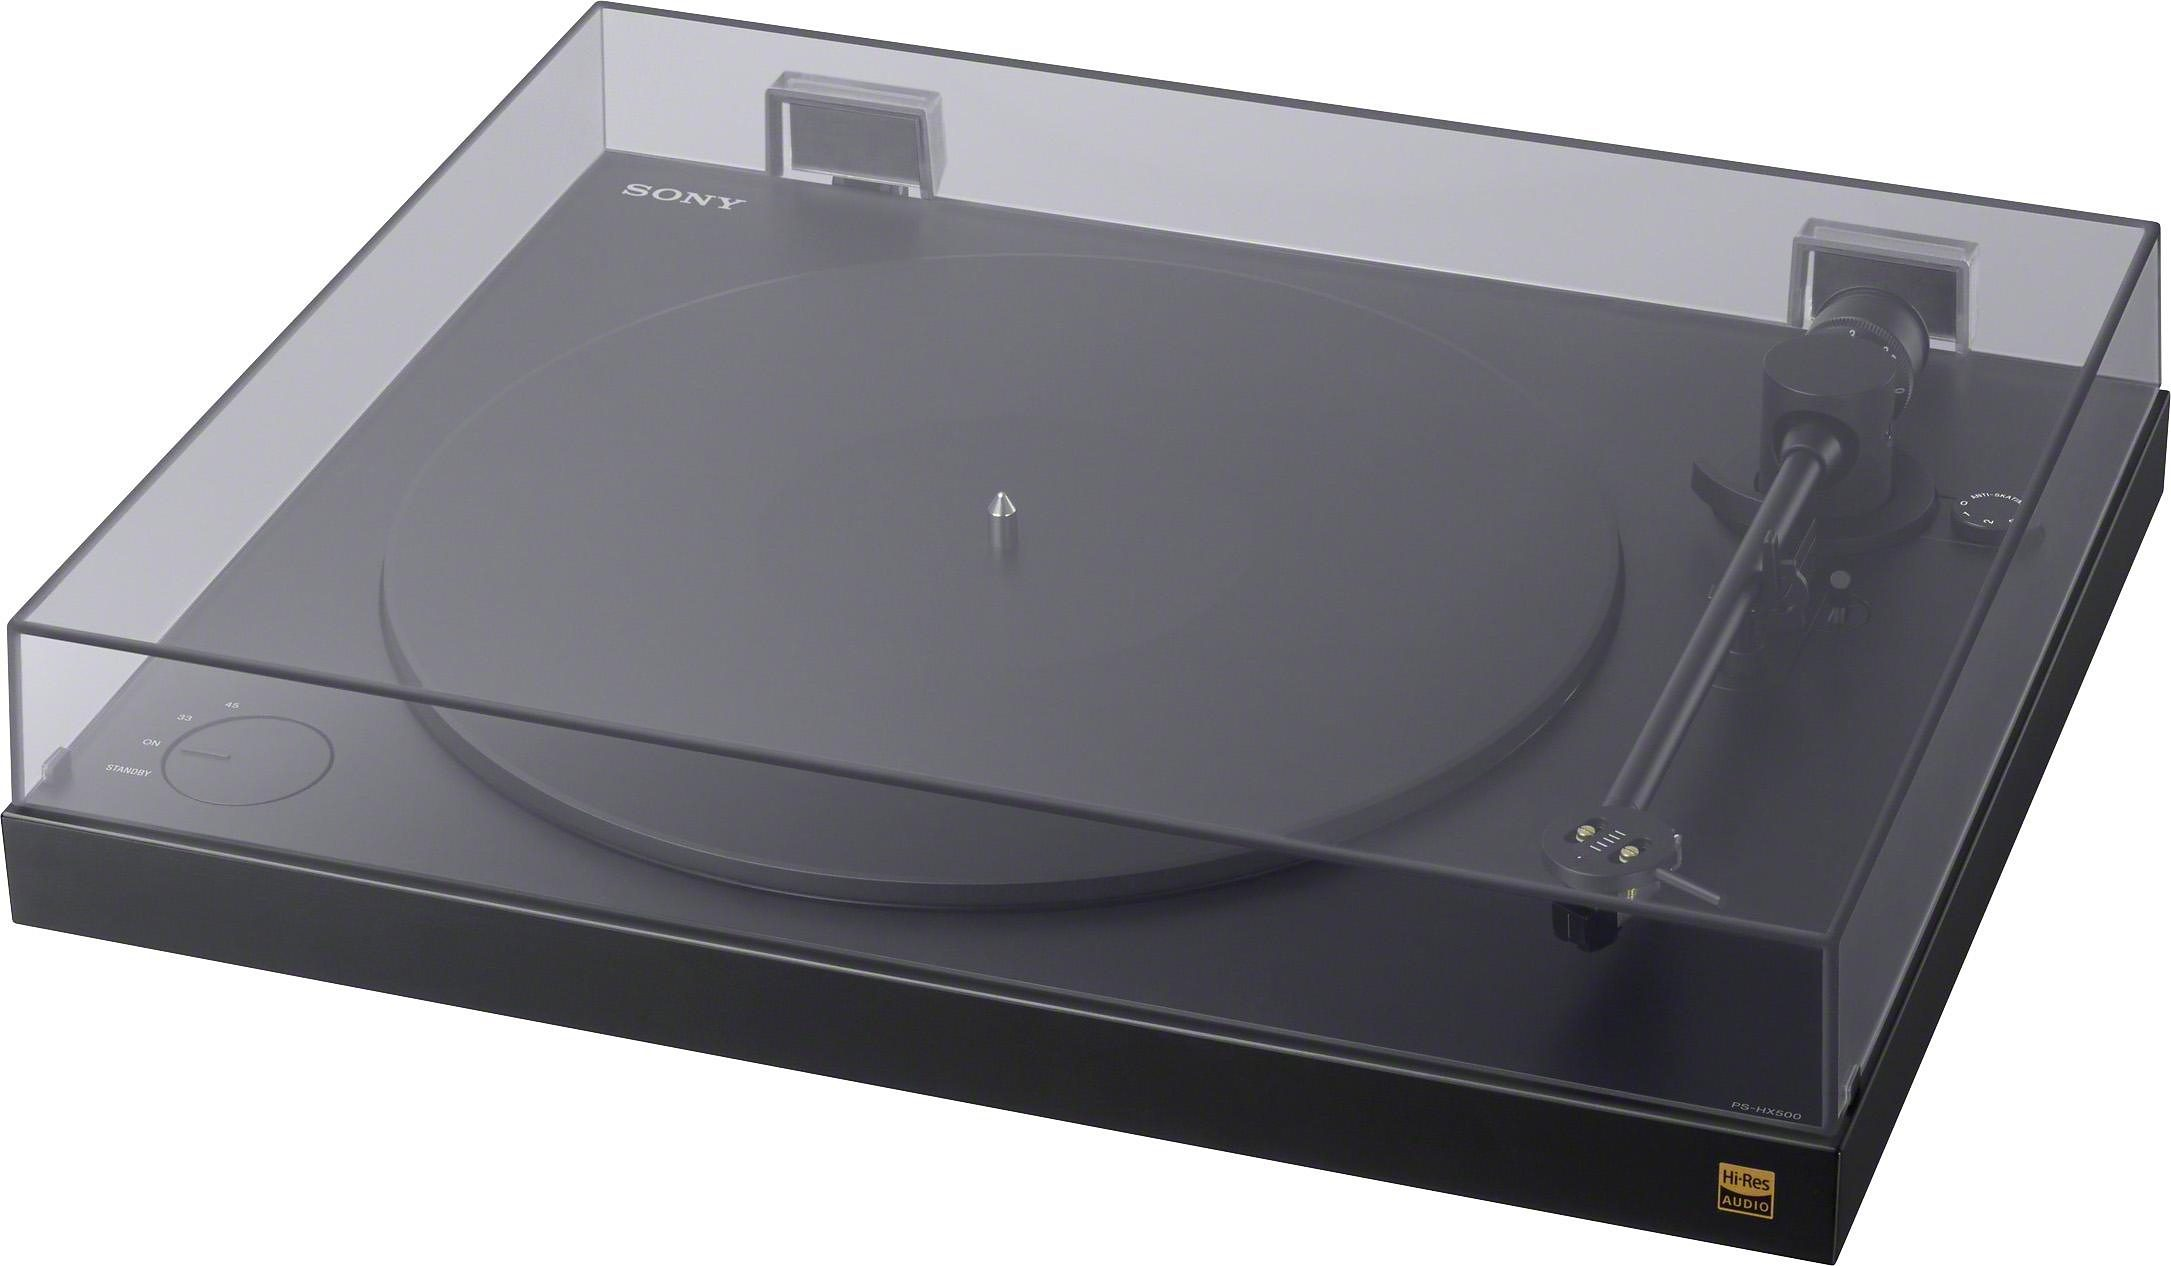 Sony PS-HX500 Plattenspieler mit High-Resolution-Audio-Ripping-Funktion